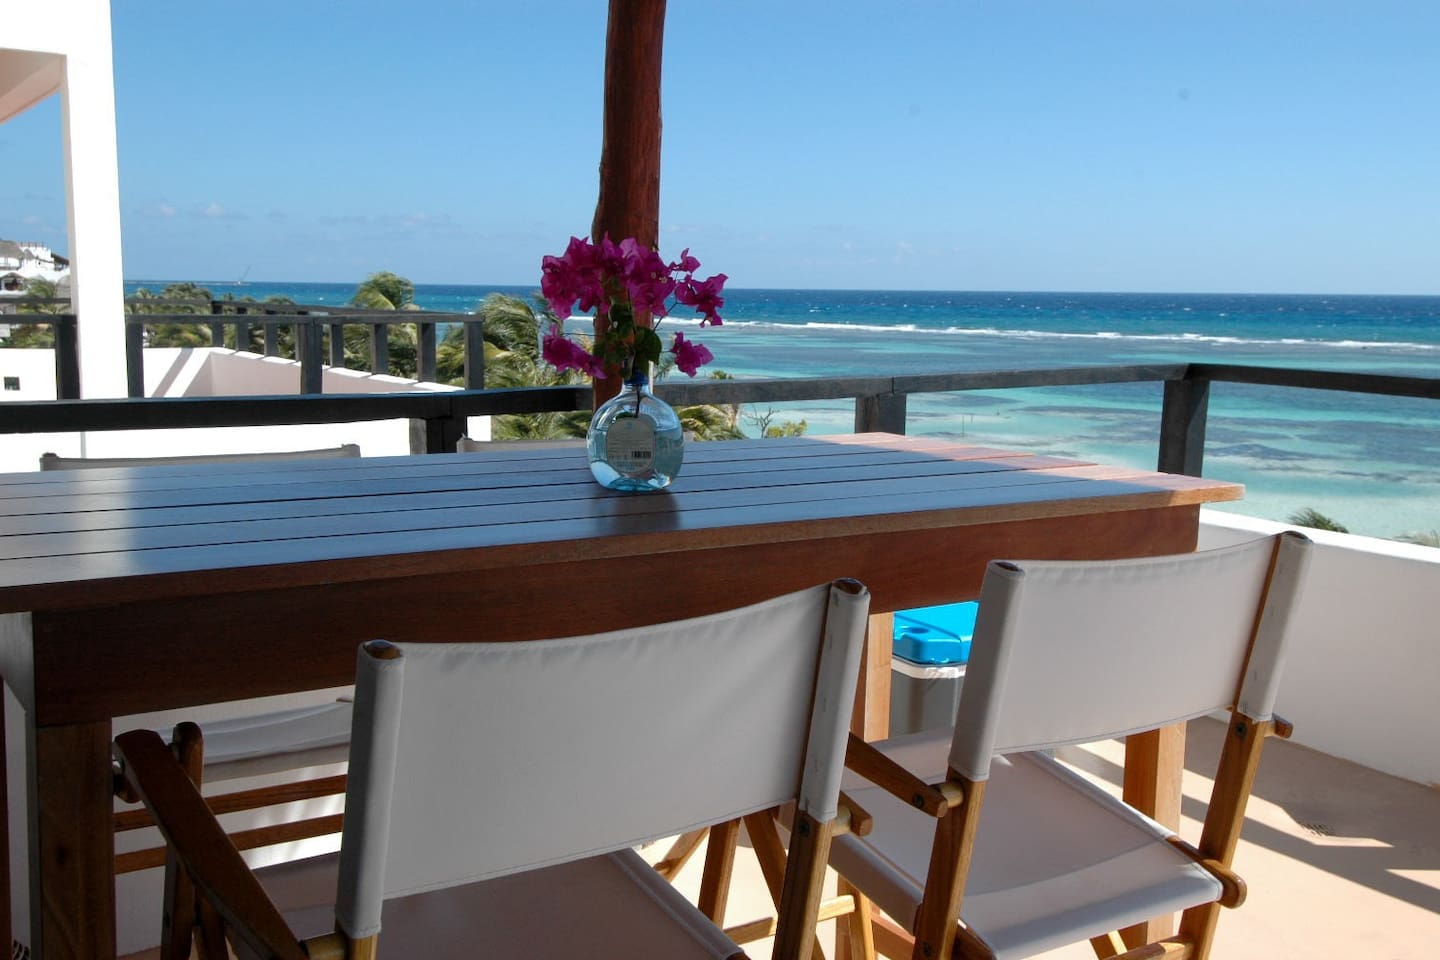 Outdoor Dining Table on Penthouse Balcony